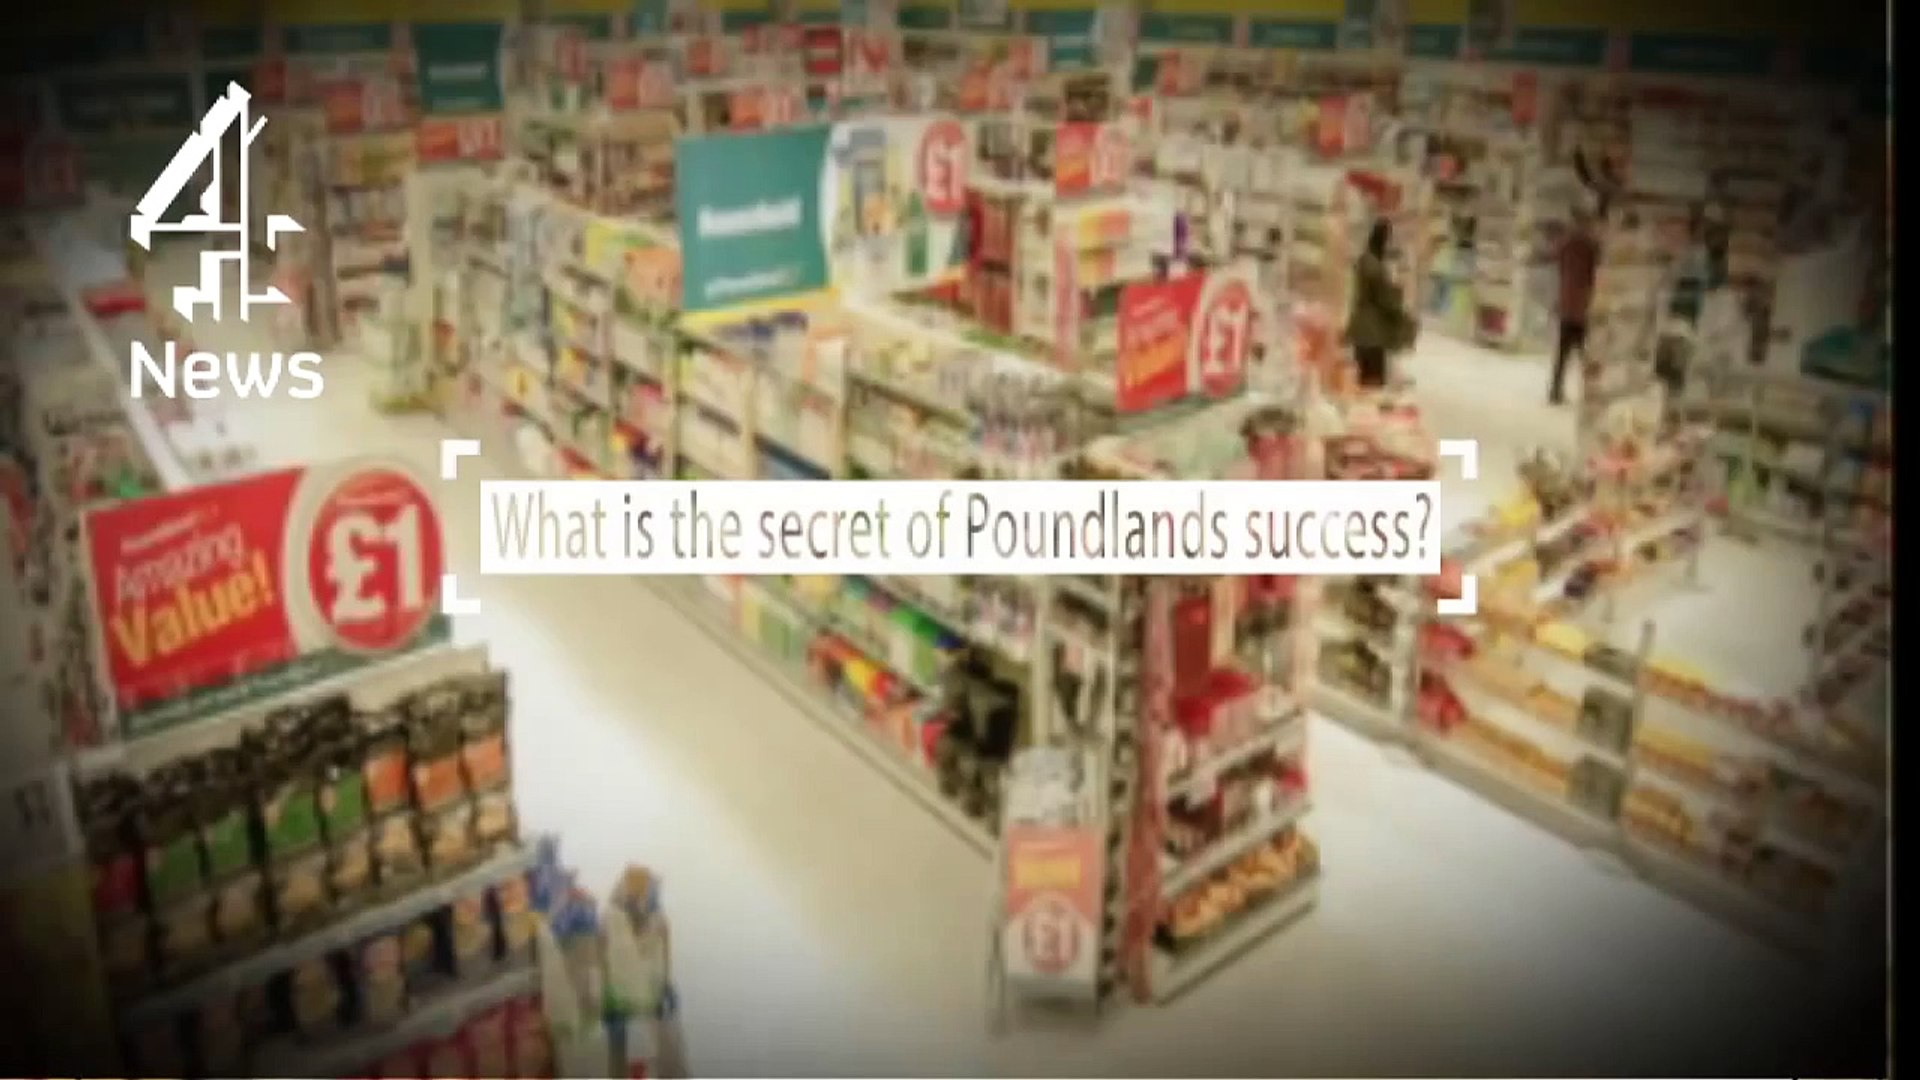 Poundland explained: from stock 'em high to the stock exchange